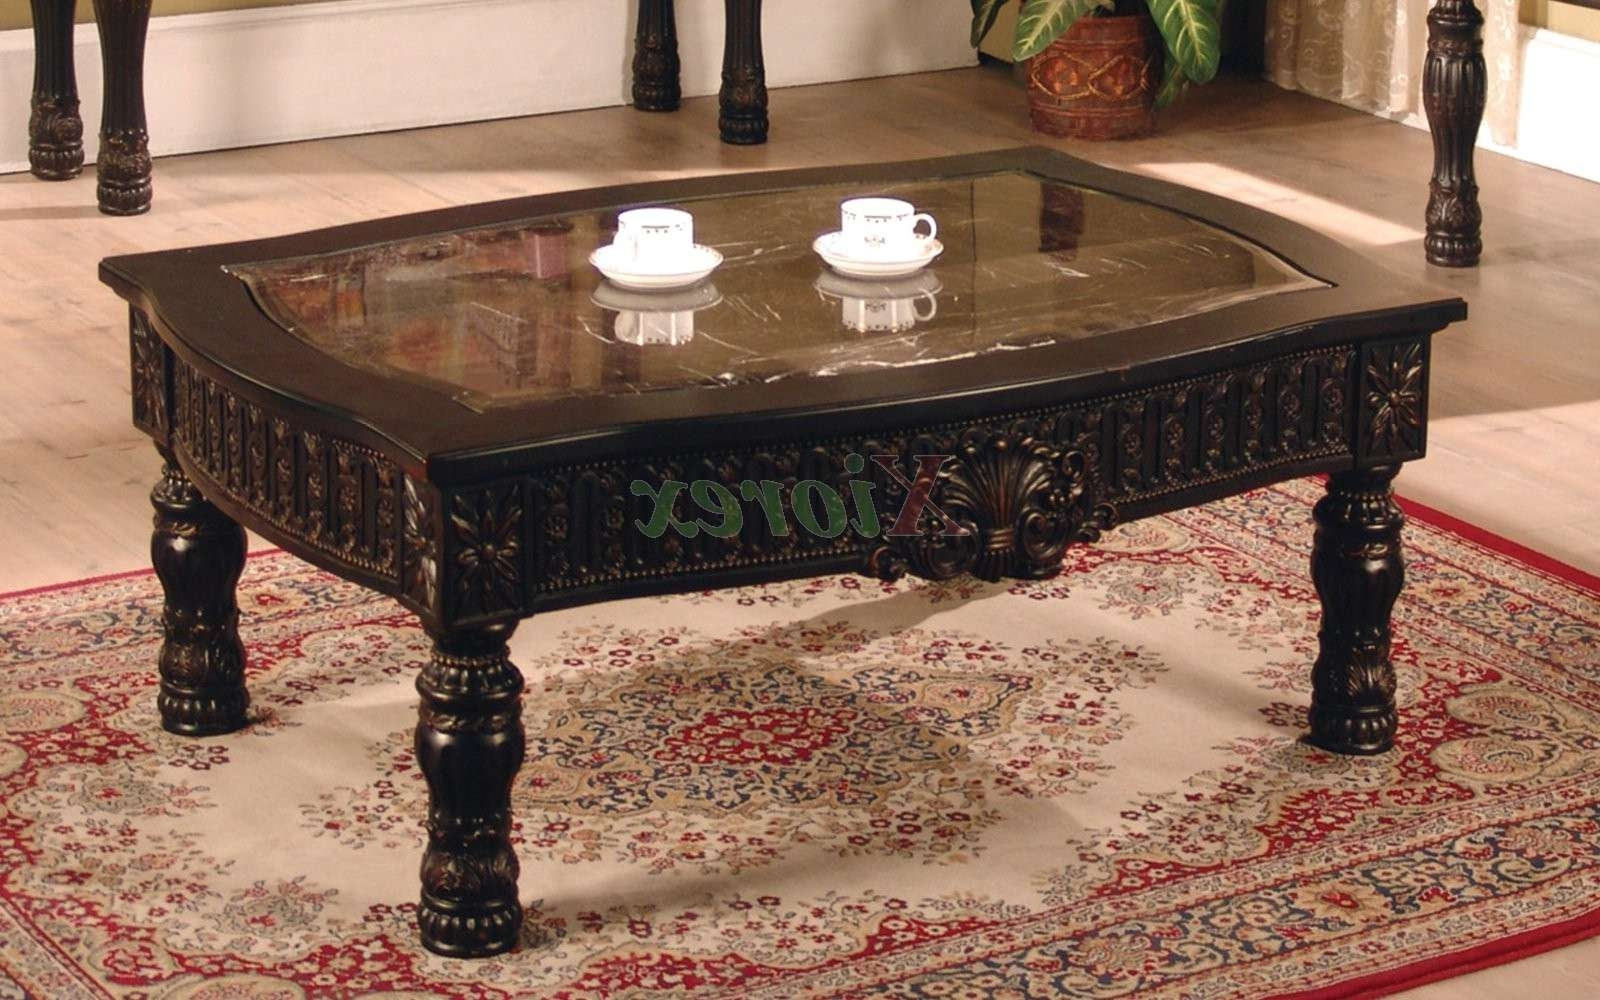 Ajax Rectangle Coffee Table With Faux Marble Top Inlay (View 2 of 20)